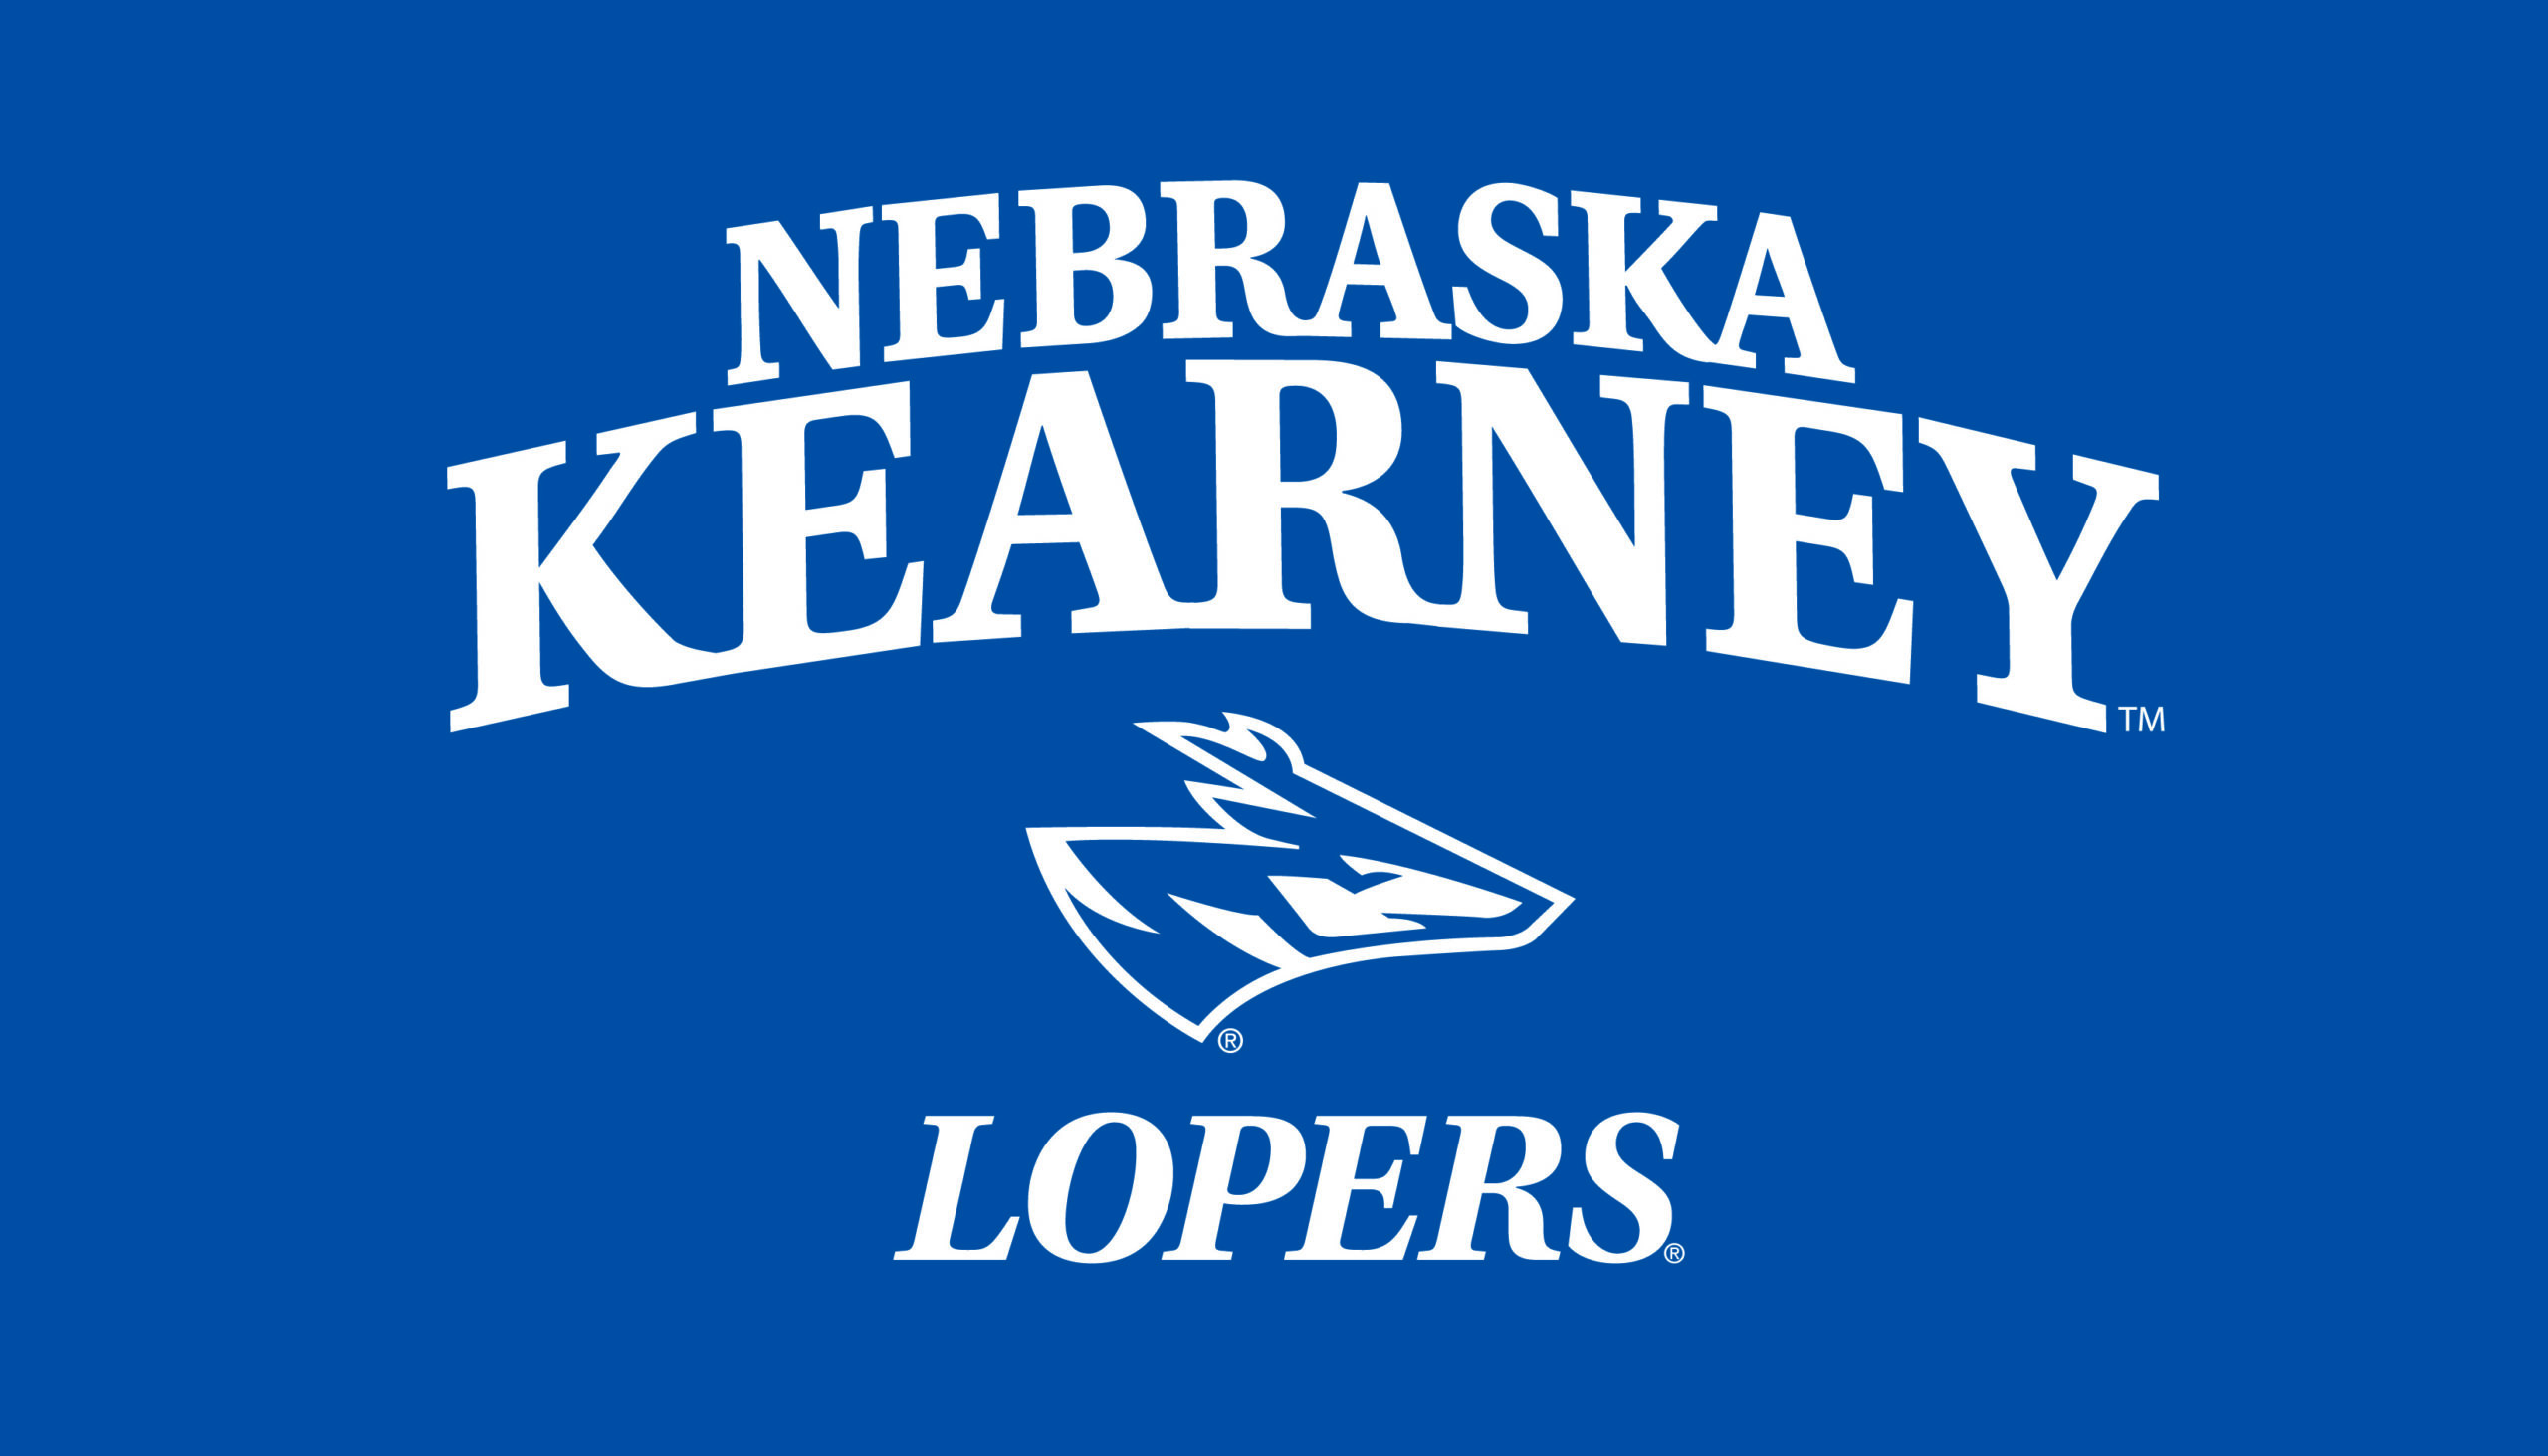 UNK Lopers logo as schools announcers delay in starting fall sports